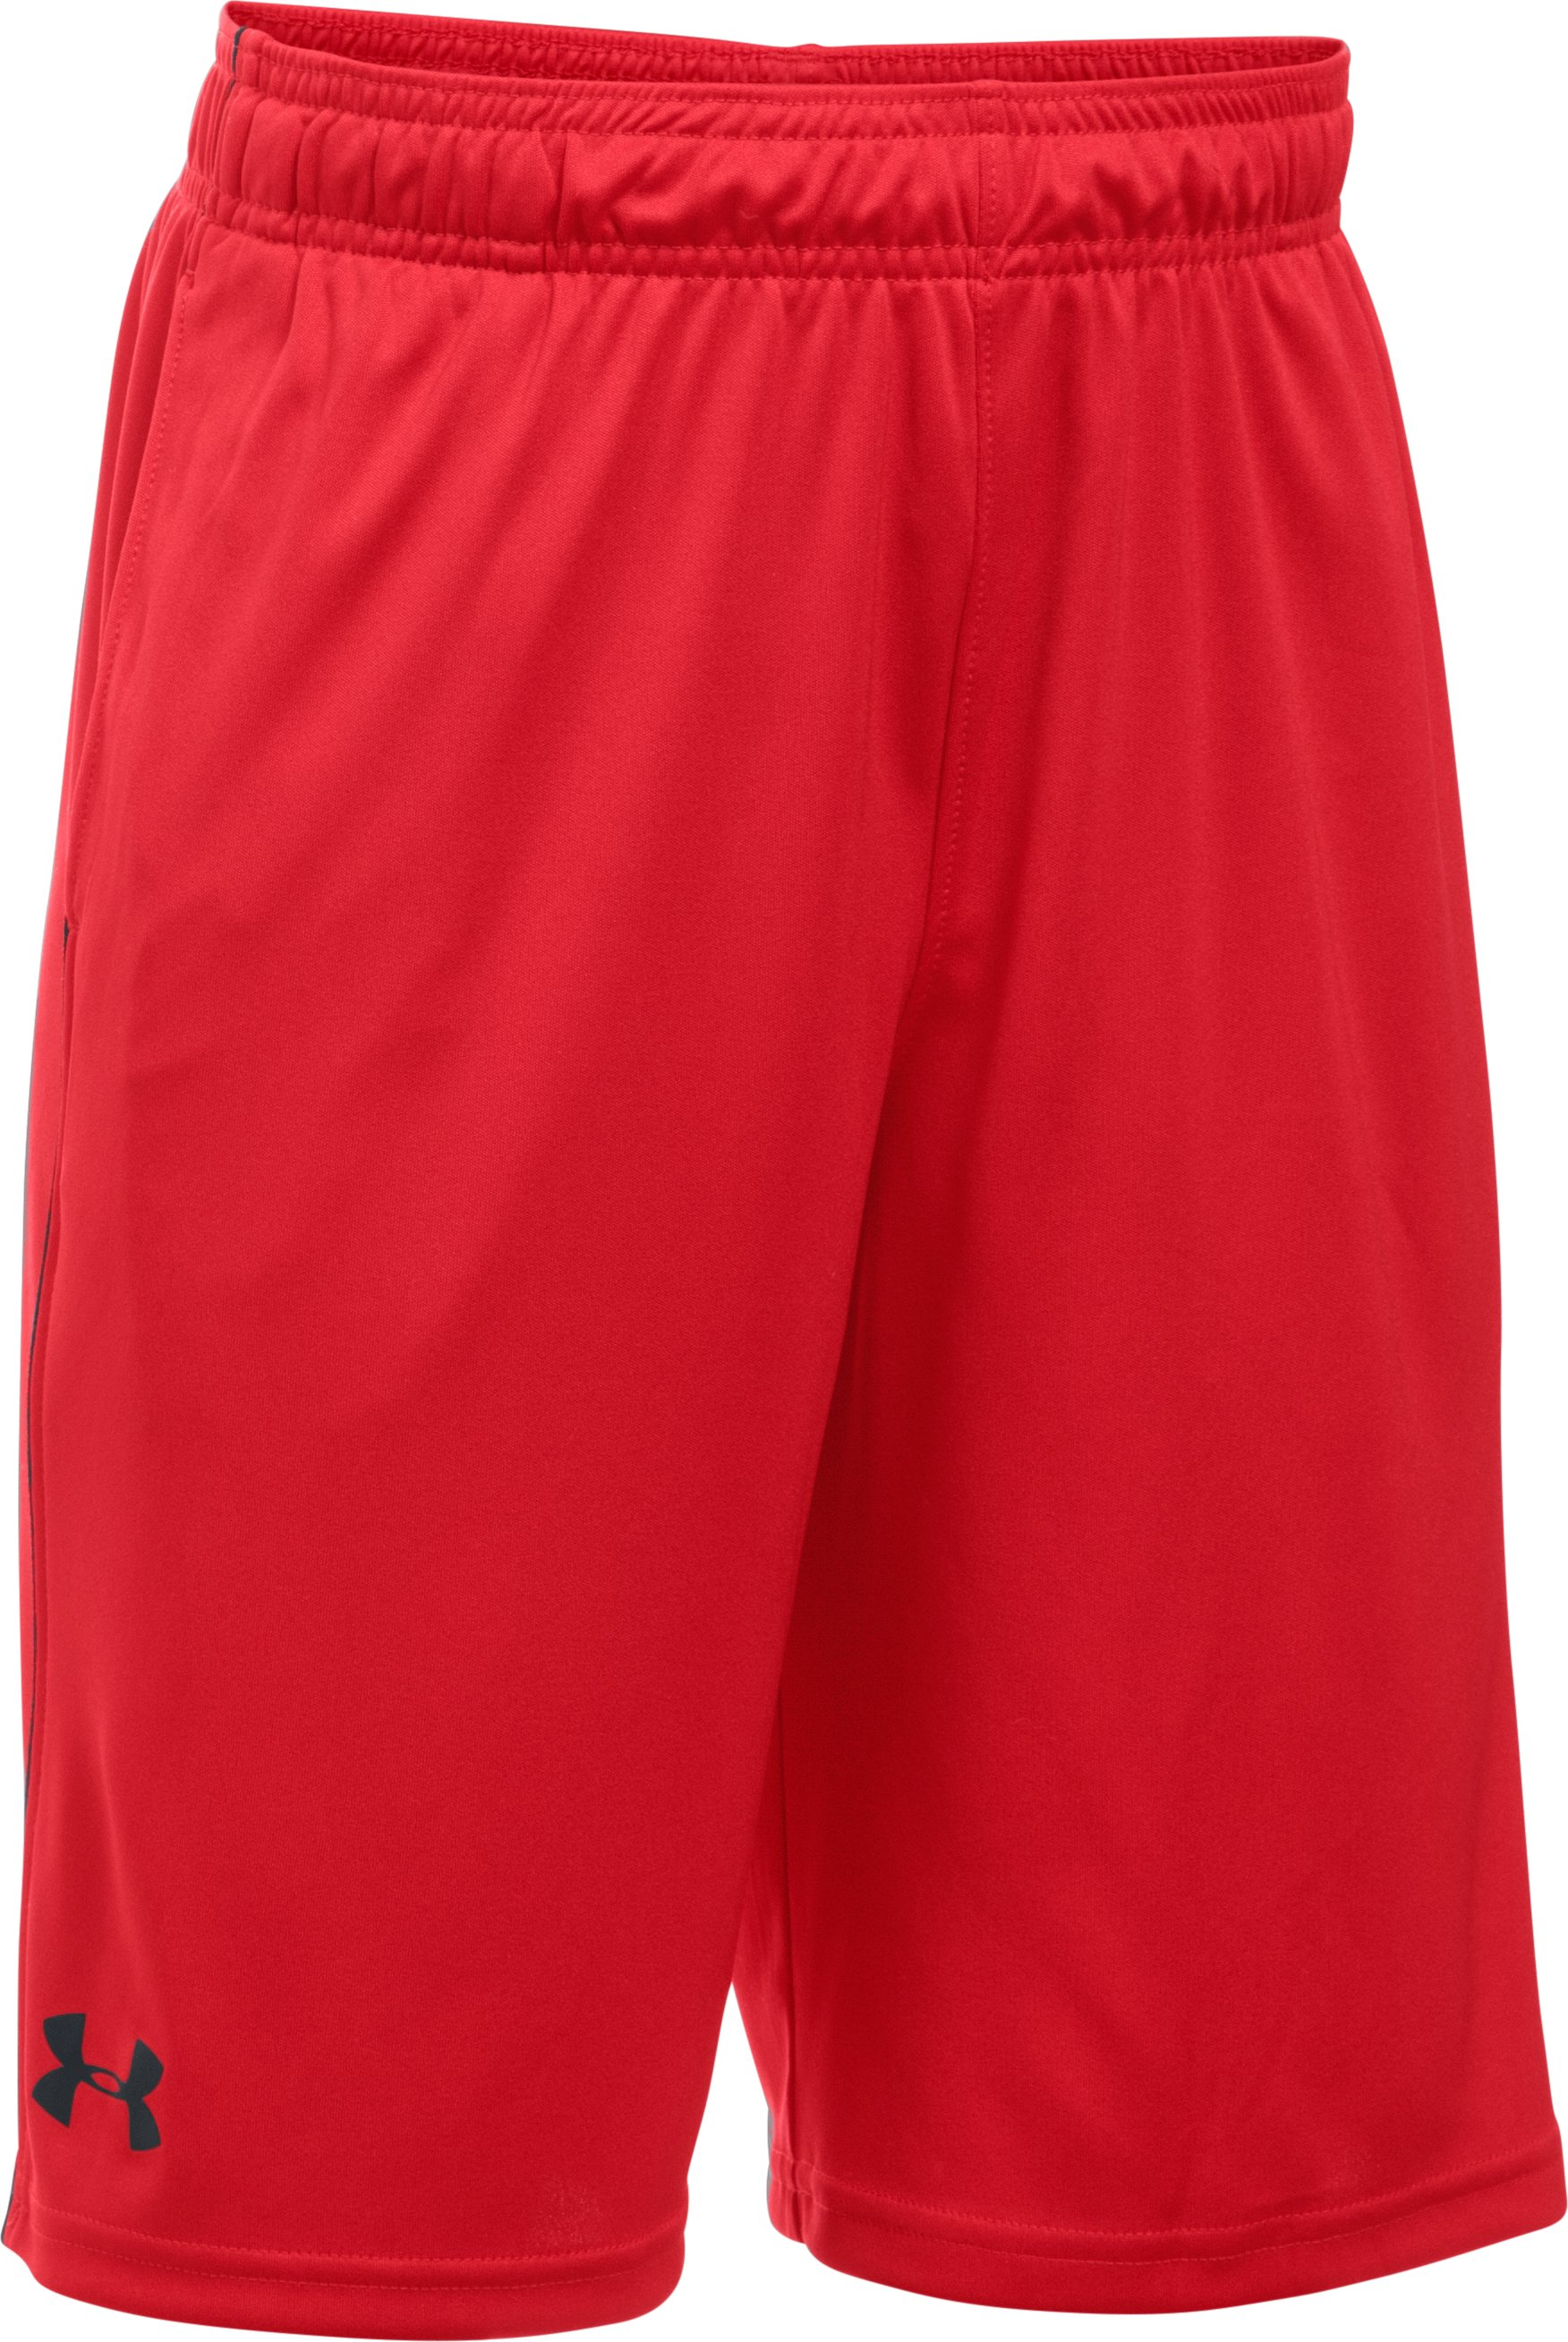 Boys' UA Tech™ Blocked Shorts, Red,